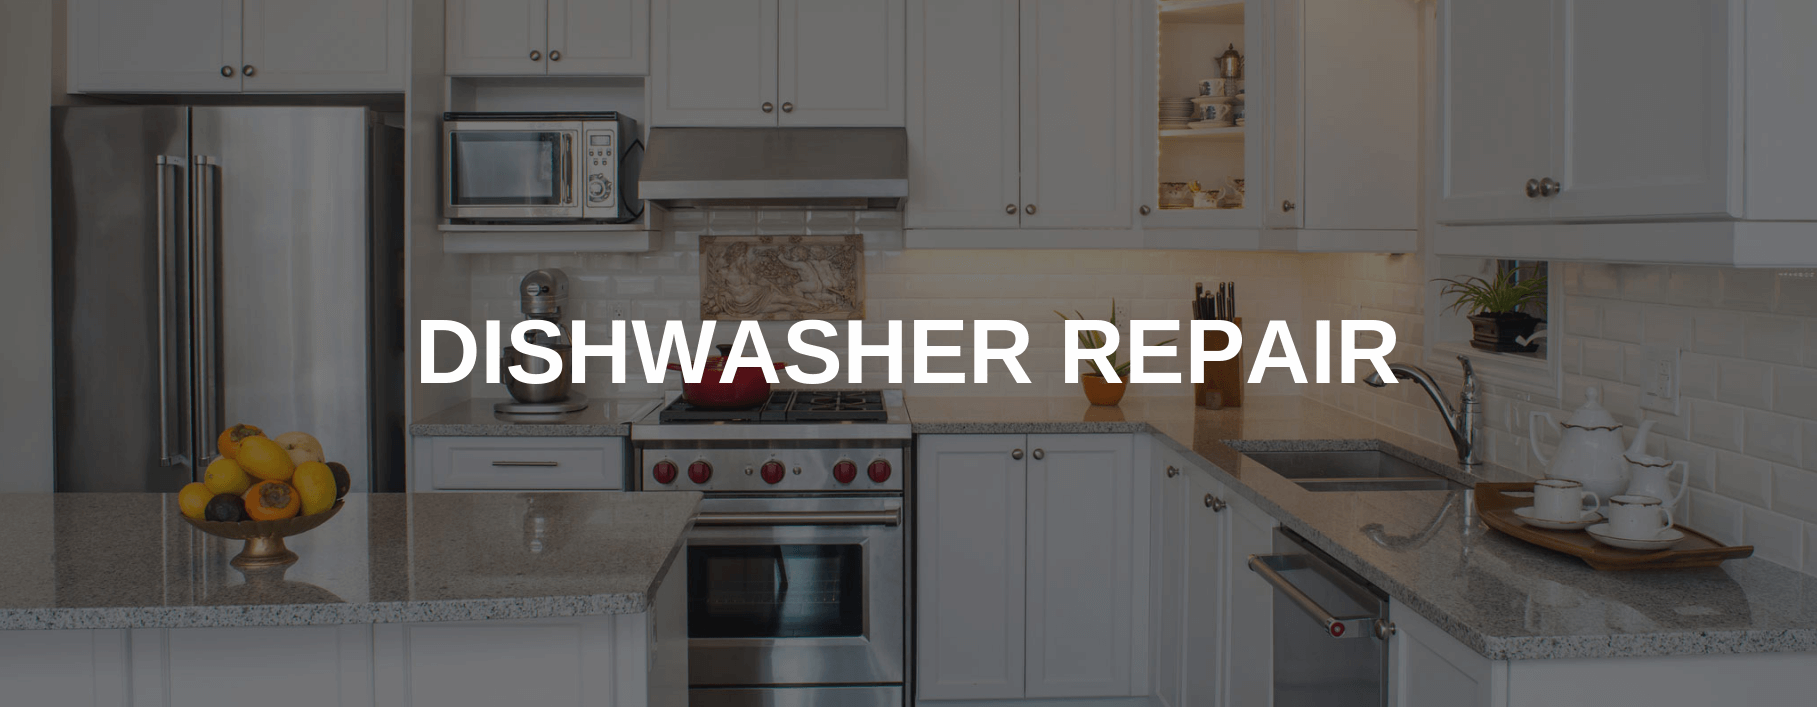 dishwasher repair greenwood